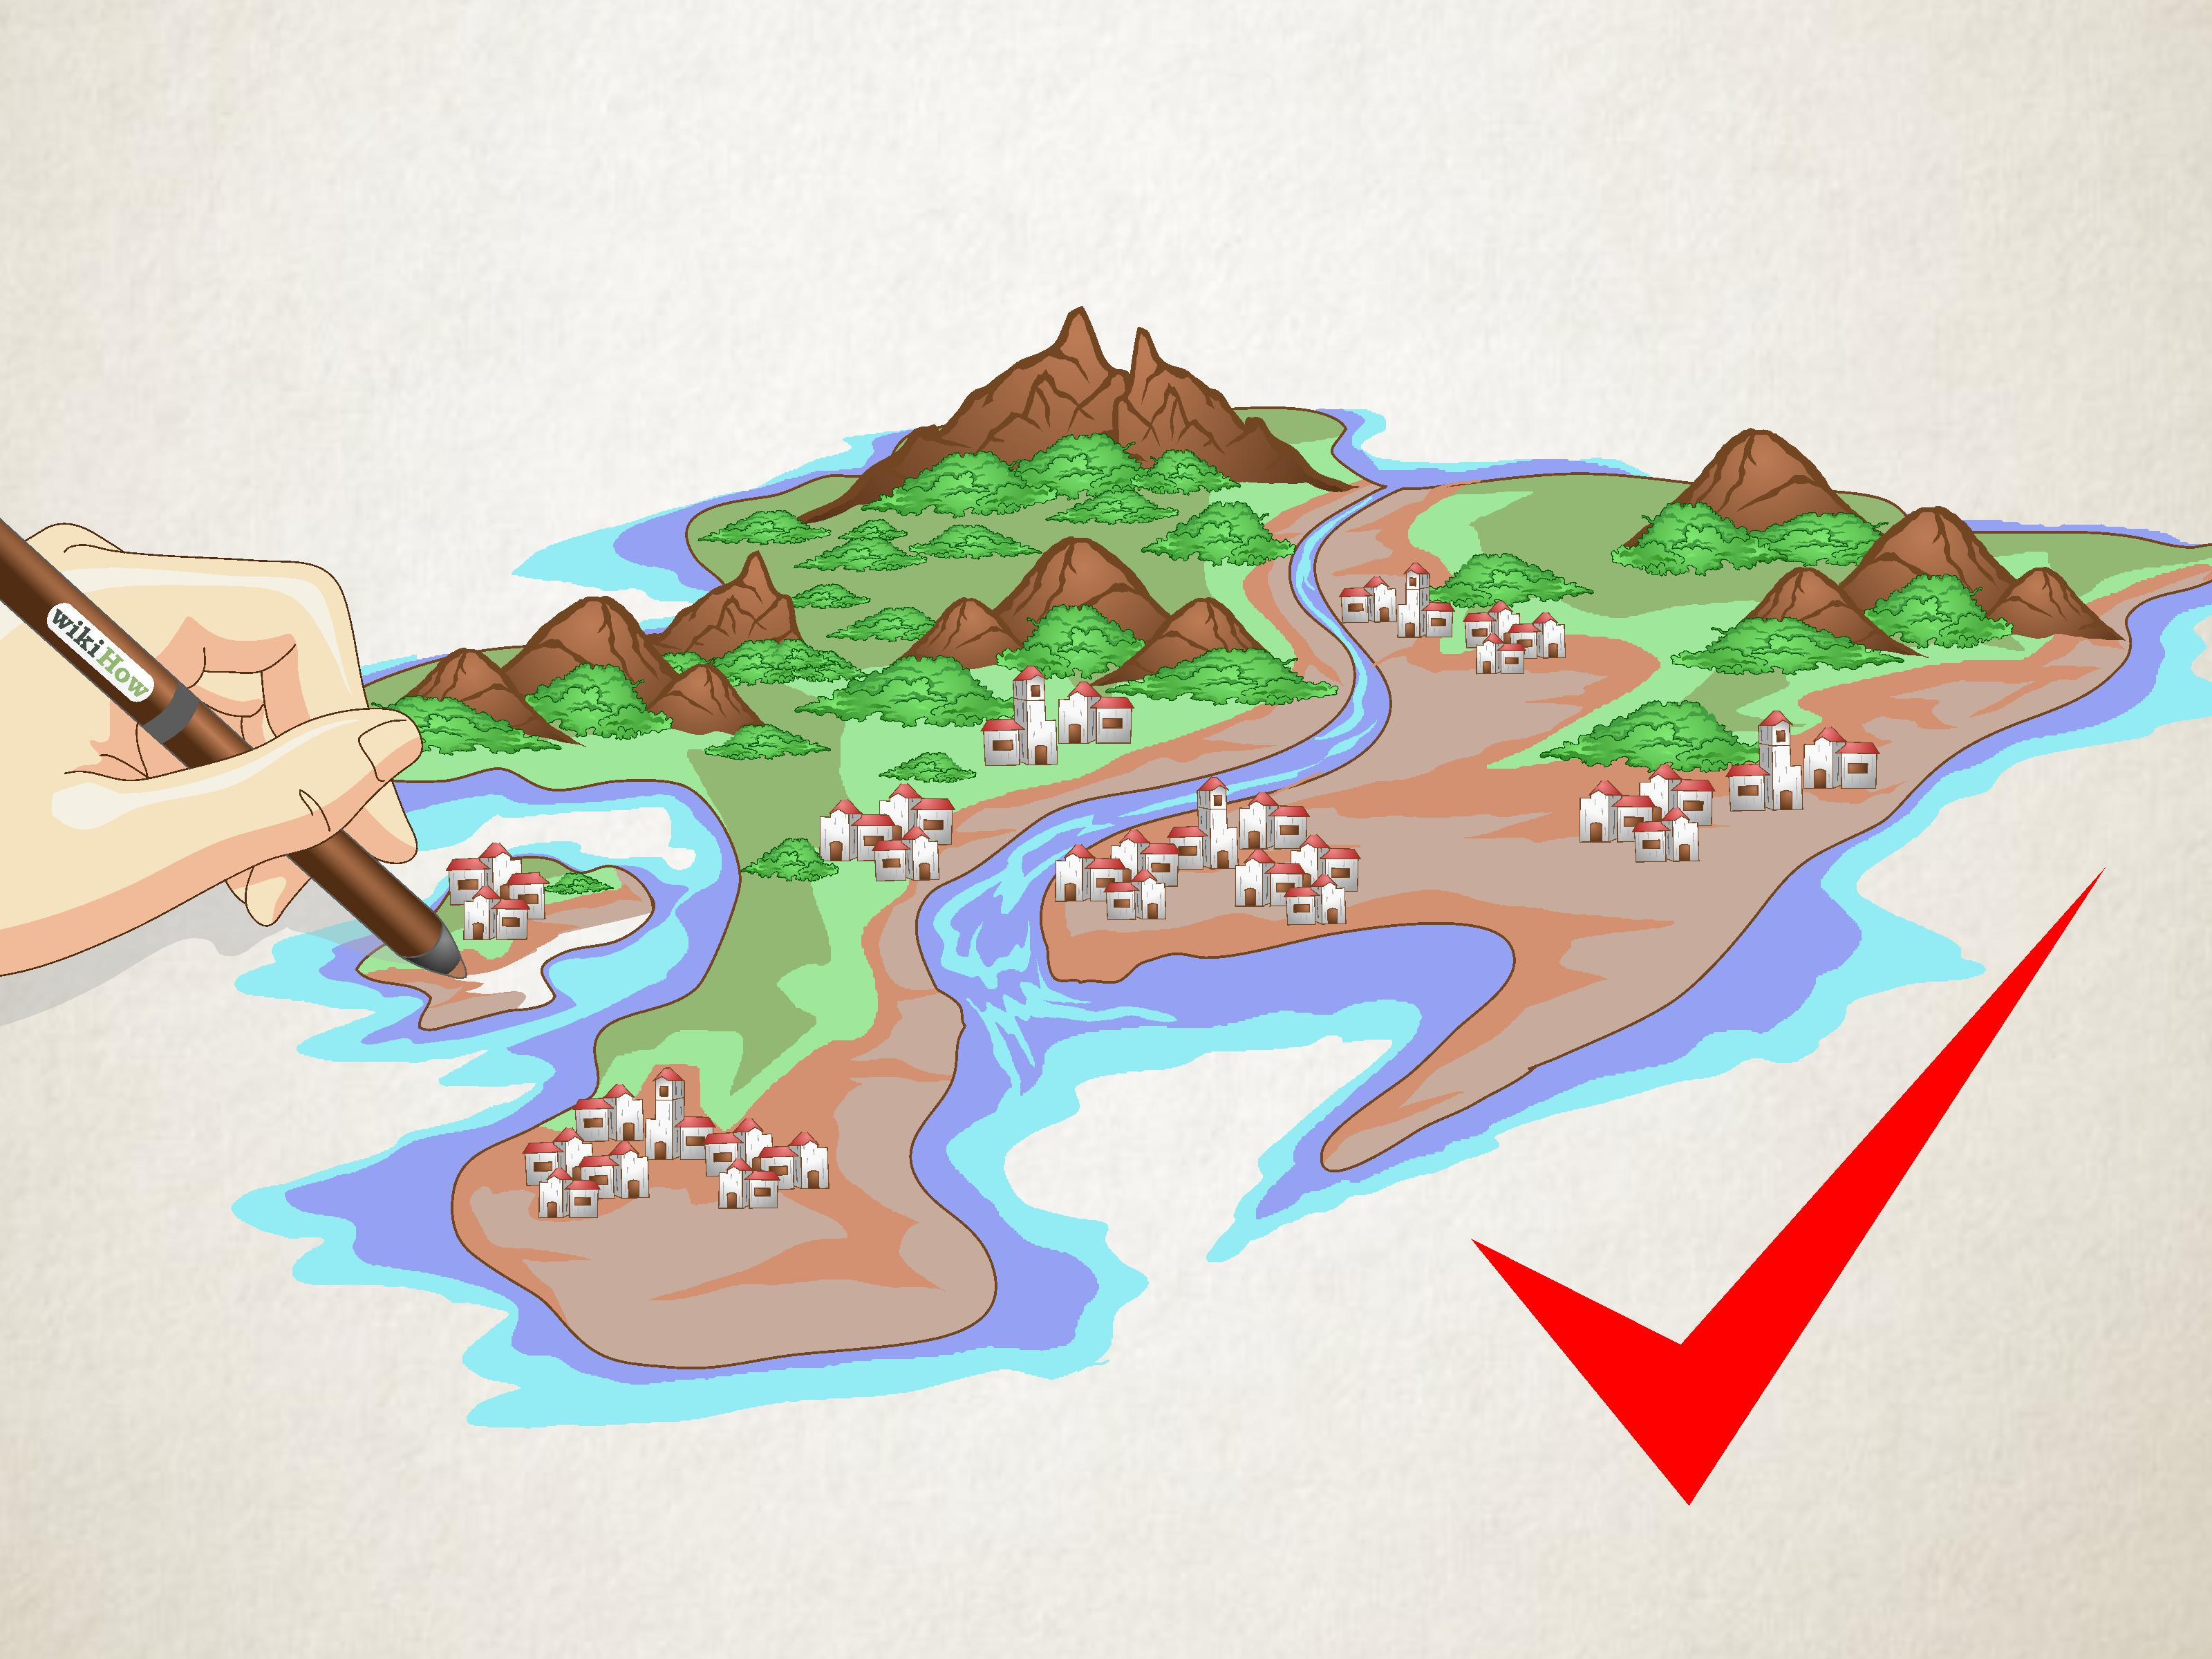 How To Draw A Map Of An Imaginary Place 12 Steps With